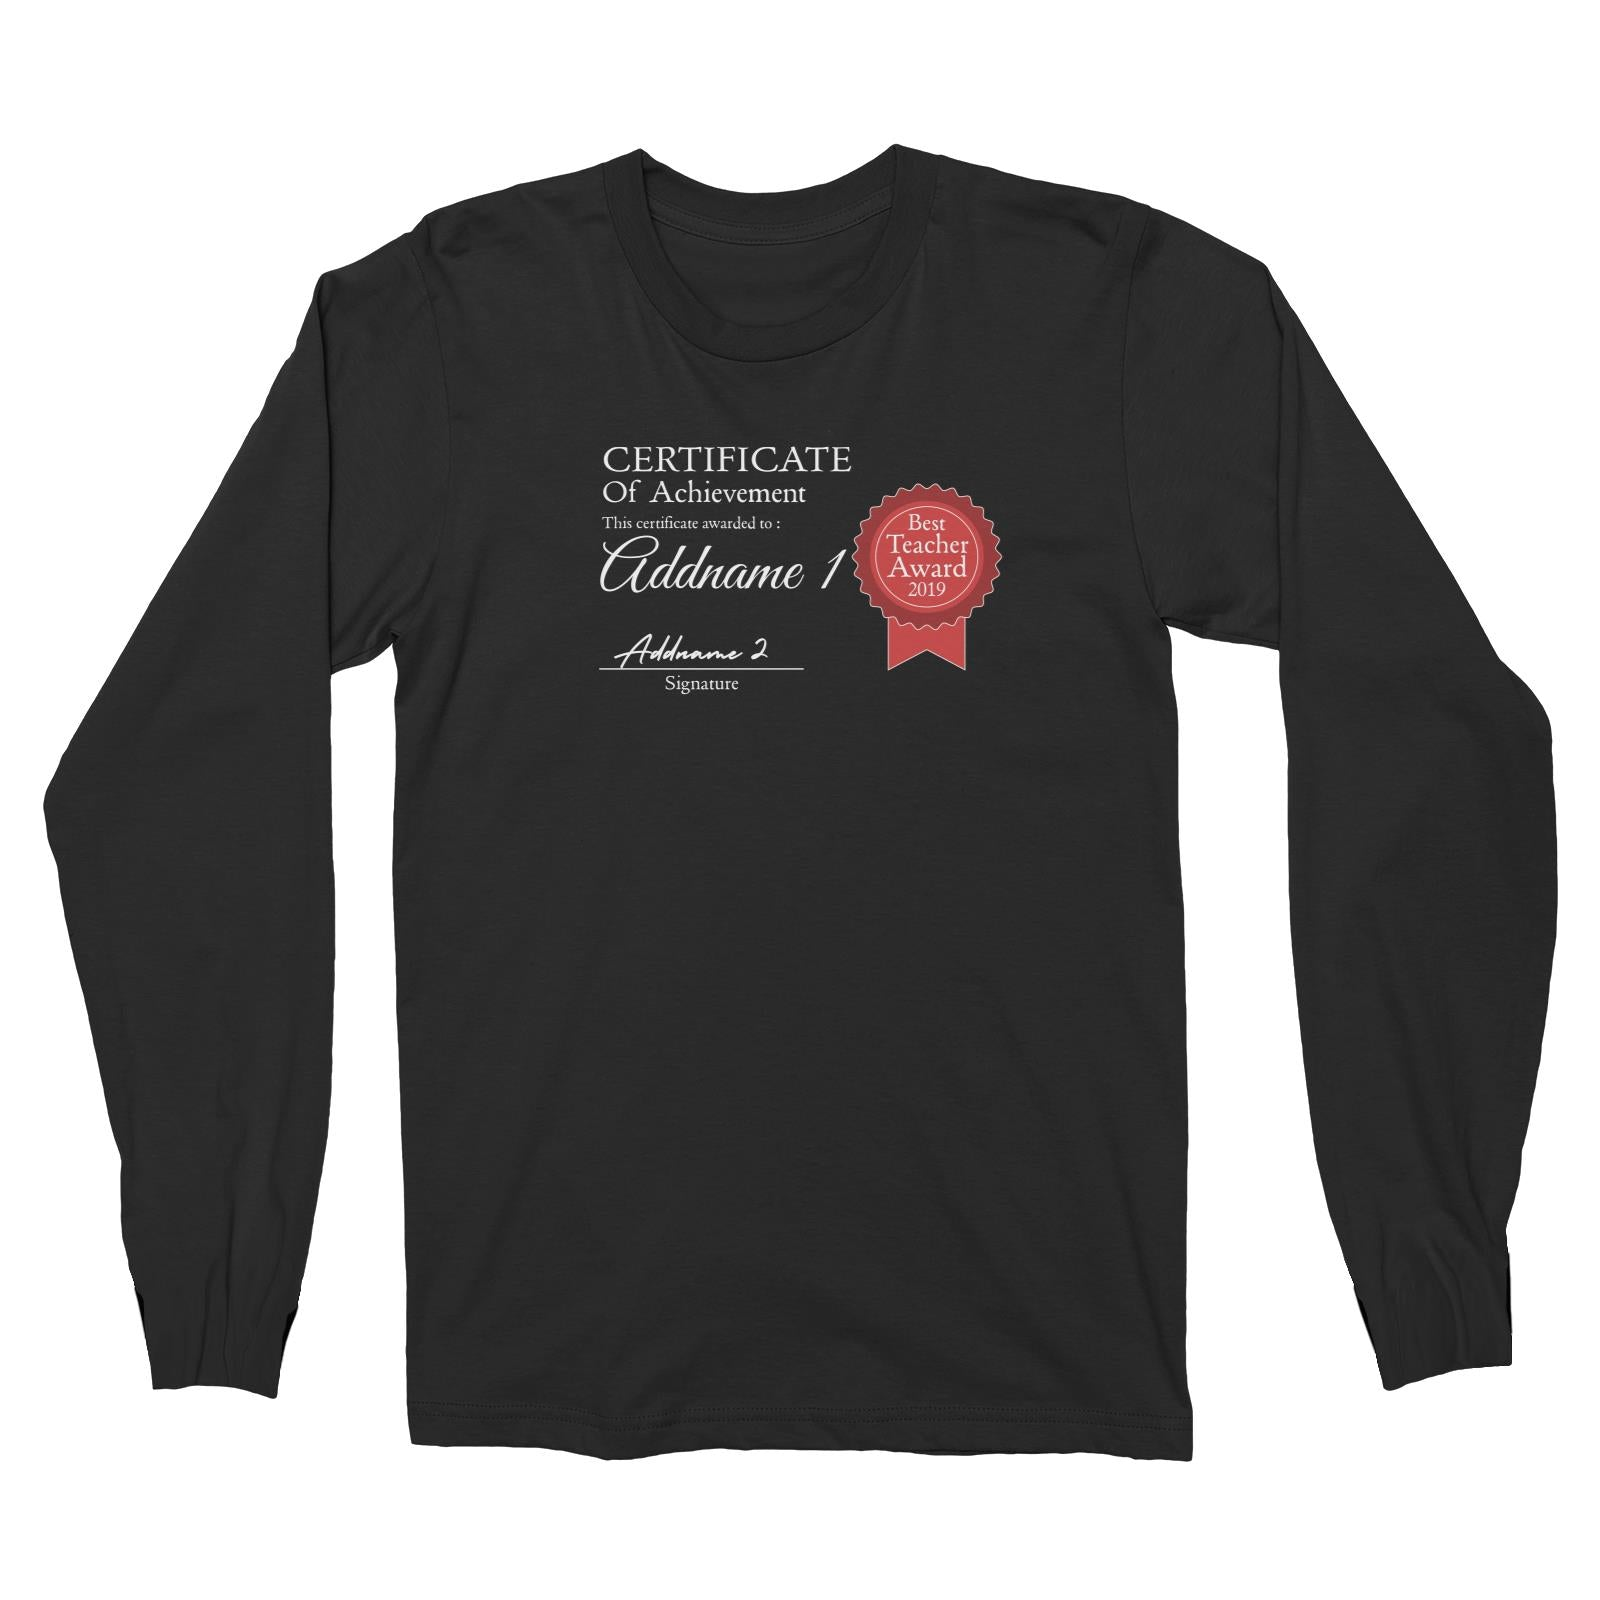 Teacher Certificate Best Teacher Award 2019 Addname 1 & Addname 2 Long Sleeve Unisex T-Shirt